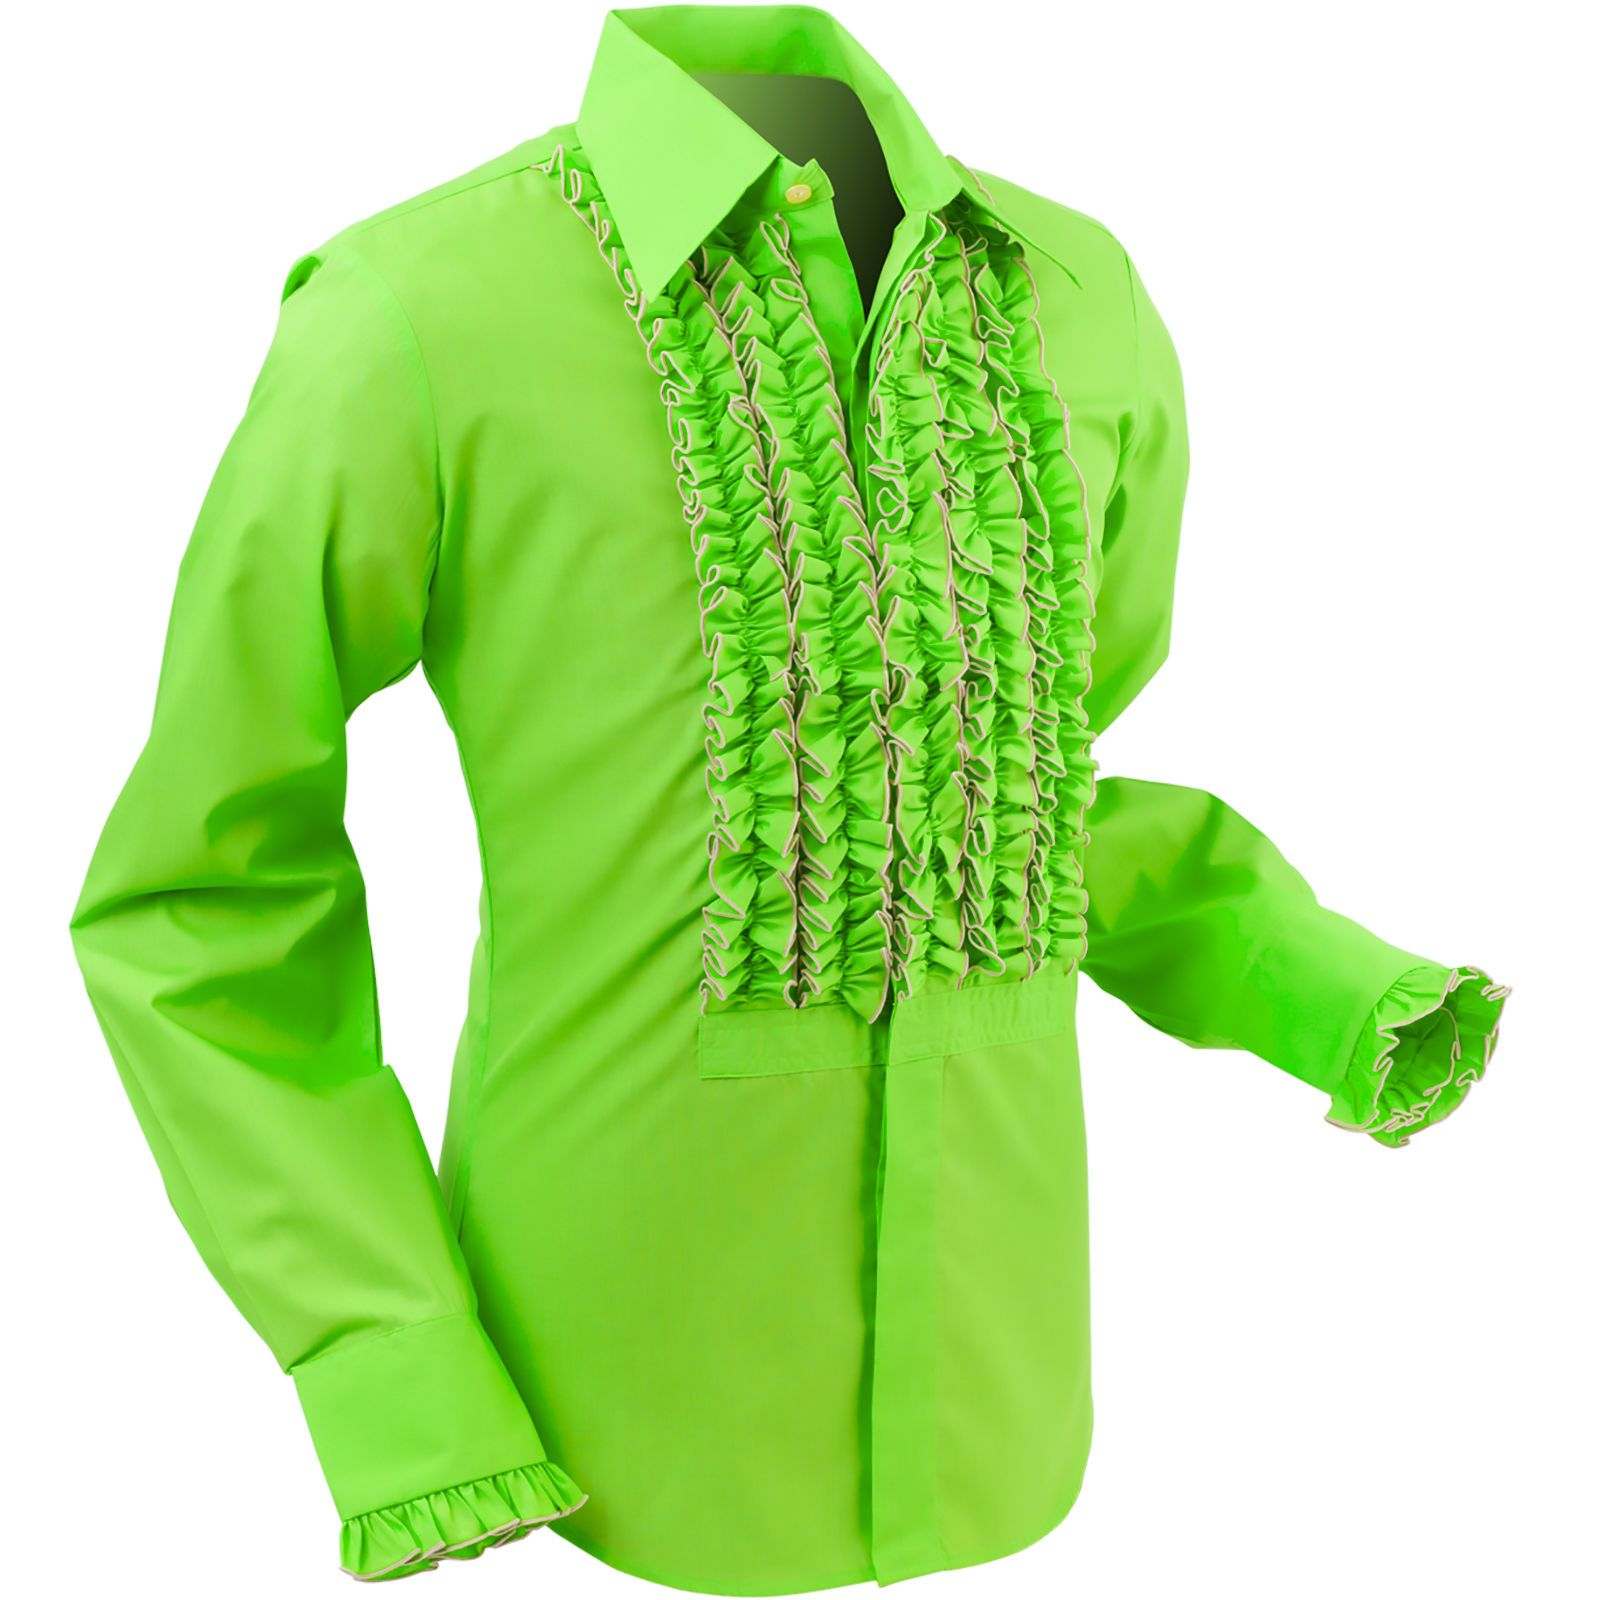 Chenaski mens retro ruche lime green ruffle tuxedo shirt for Neon green shirts for men